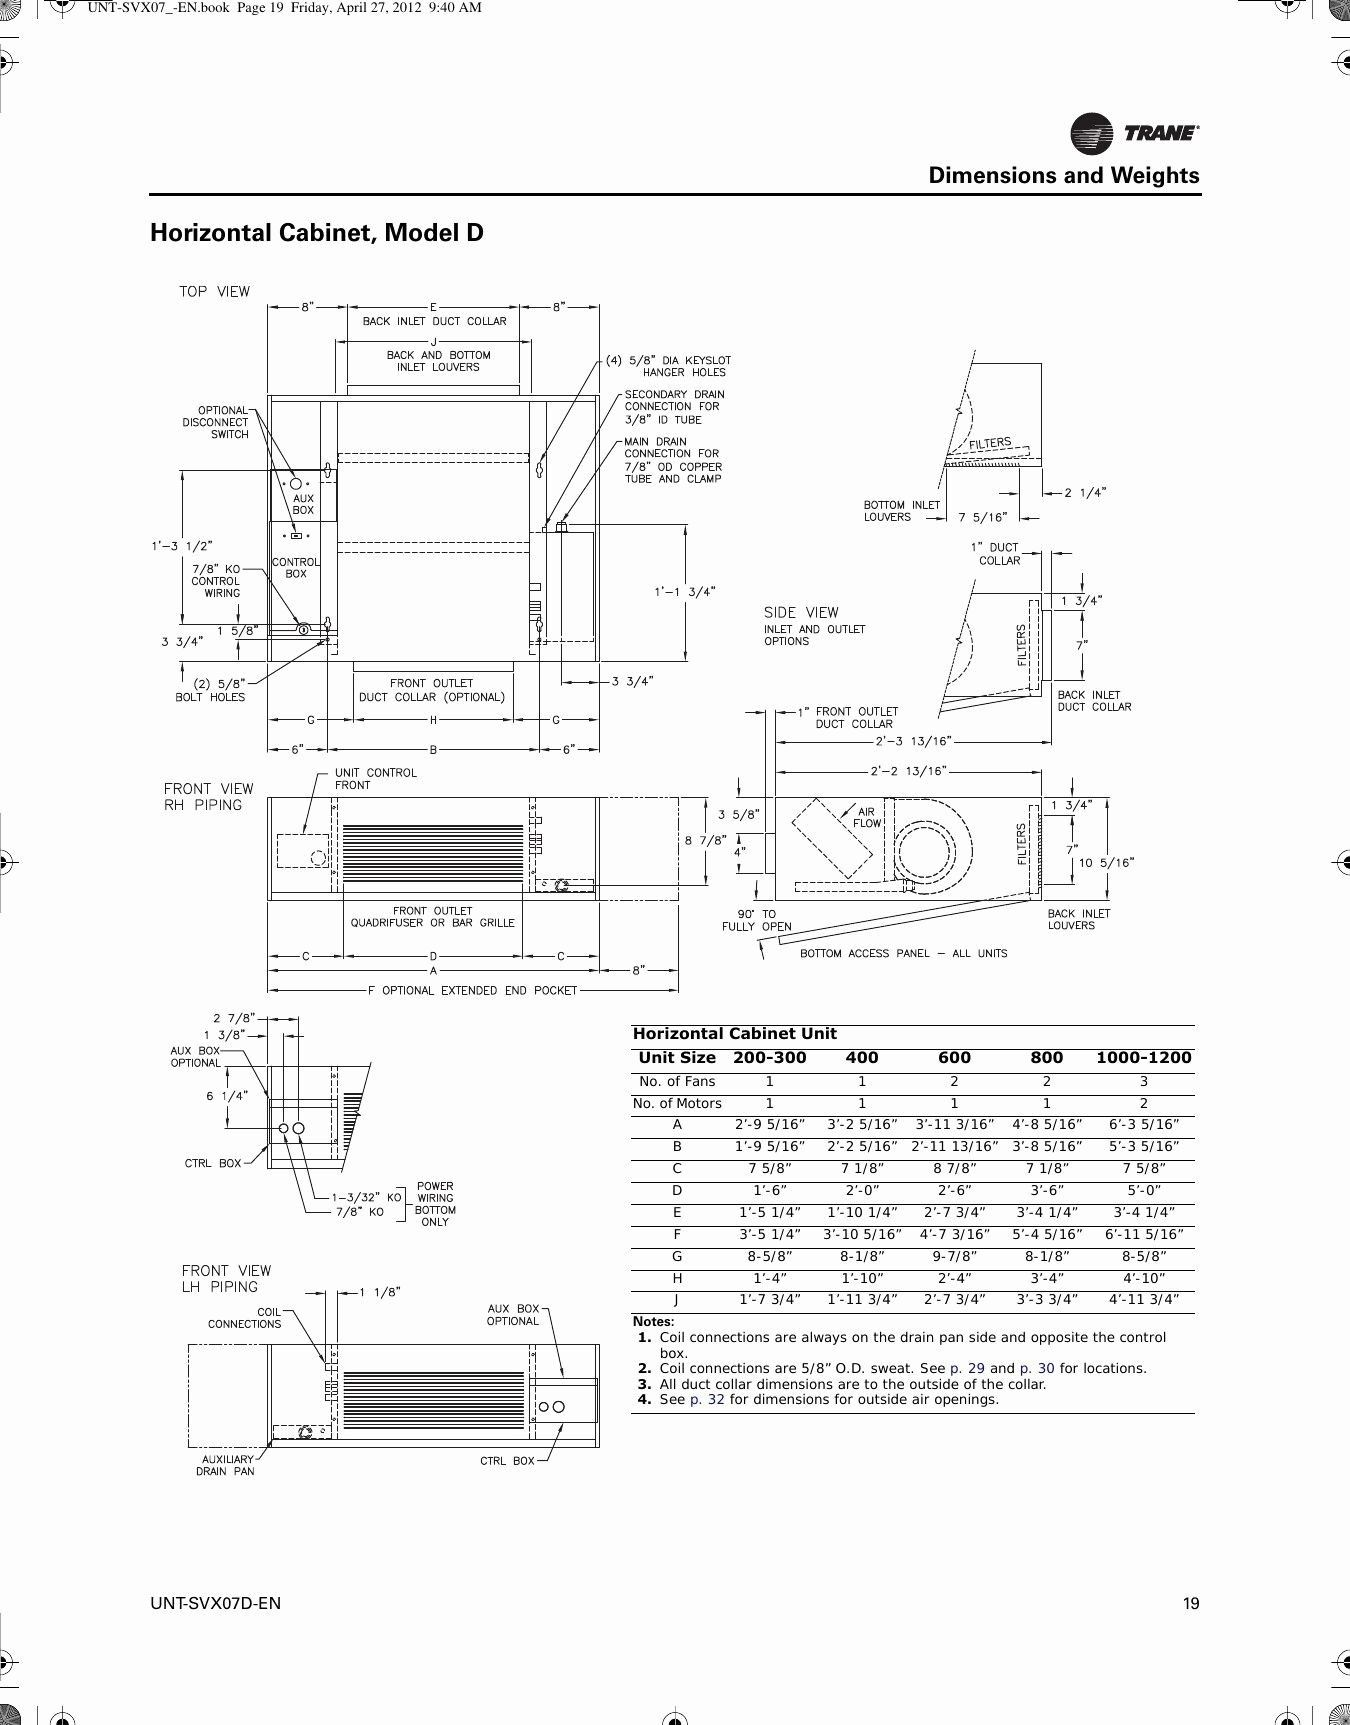 small resolution of unique wiring diagram for underfloor heating thermostat diagrams digramssample diagramimages wiringdiagramsample wiringdiagram